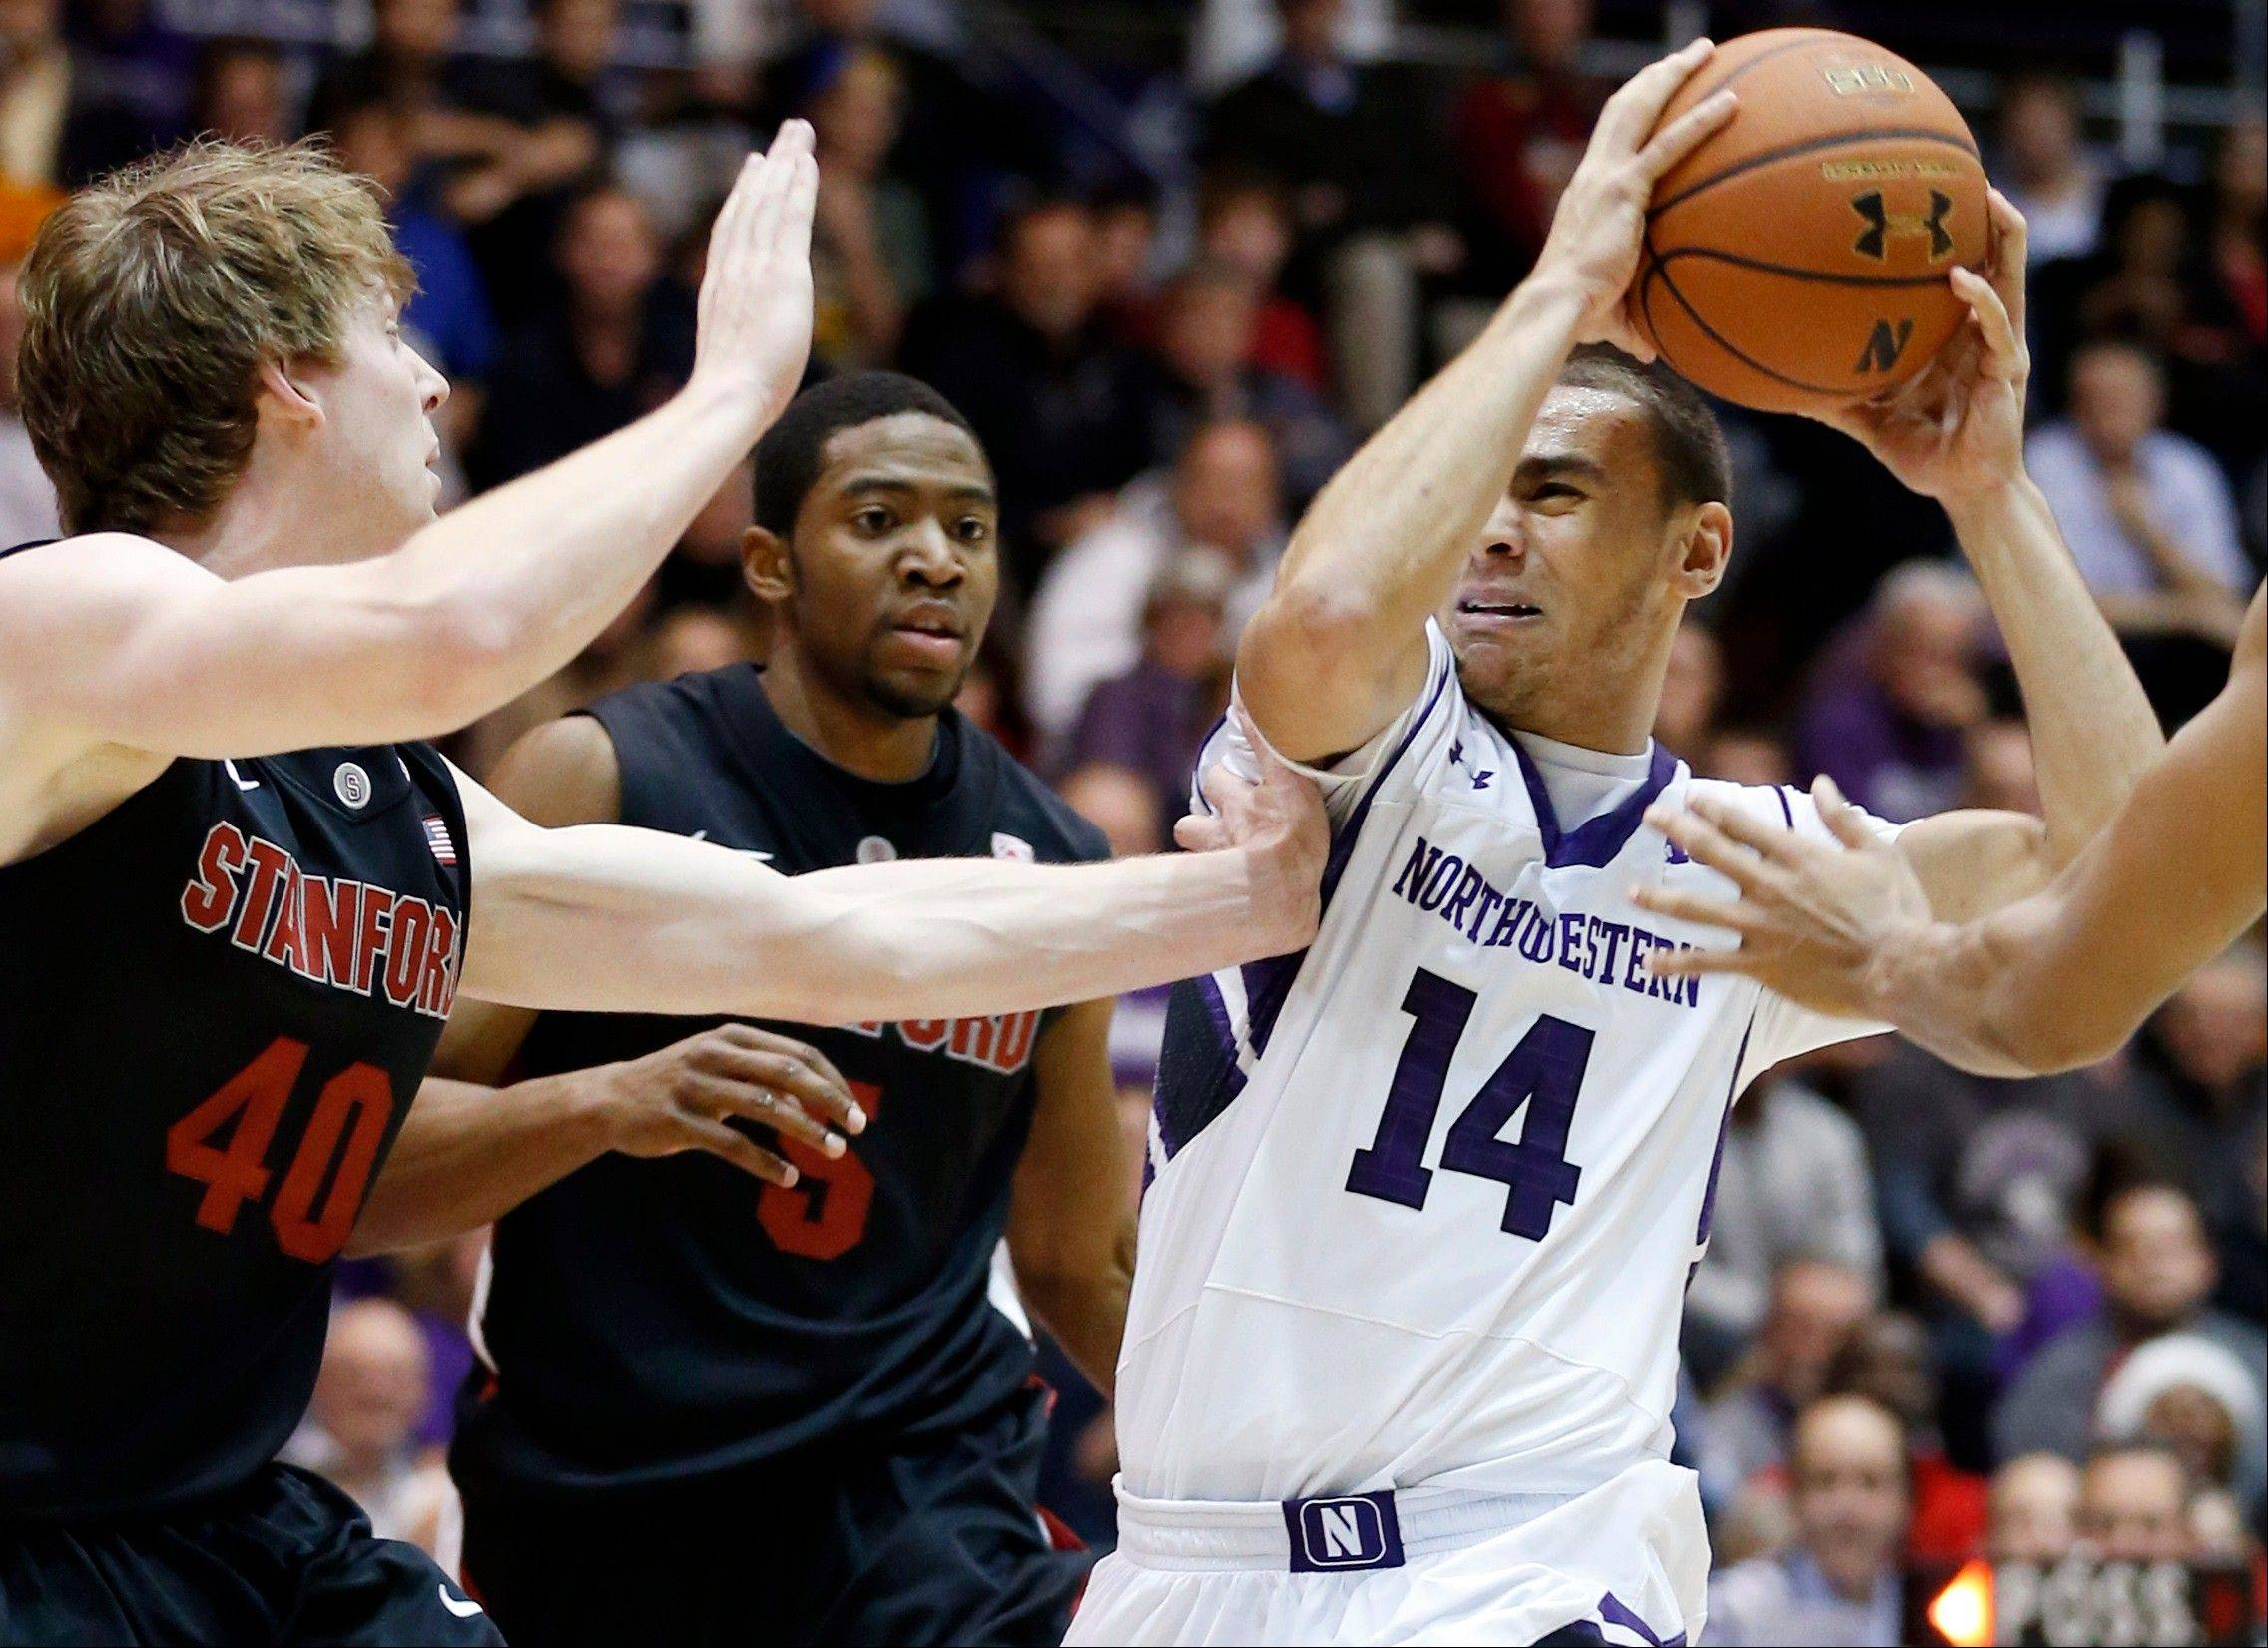 Northwestern guard Tre Demps (14) drives to the basket as Stanford forward John Gage (40), guard Chasson Randle and forward Josh Huestis, right, defend Friday during the second half. Stanford won 70-68.